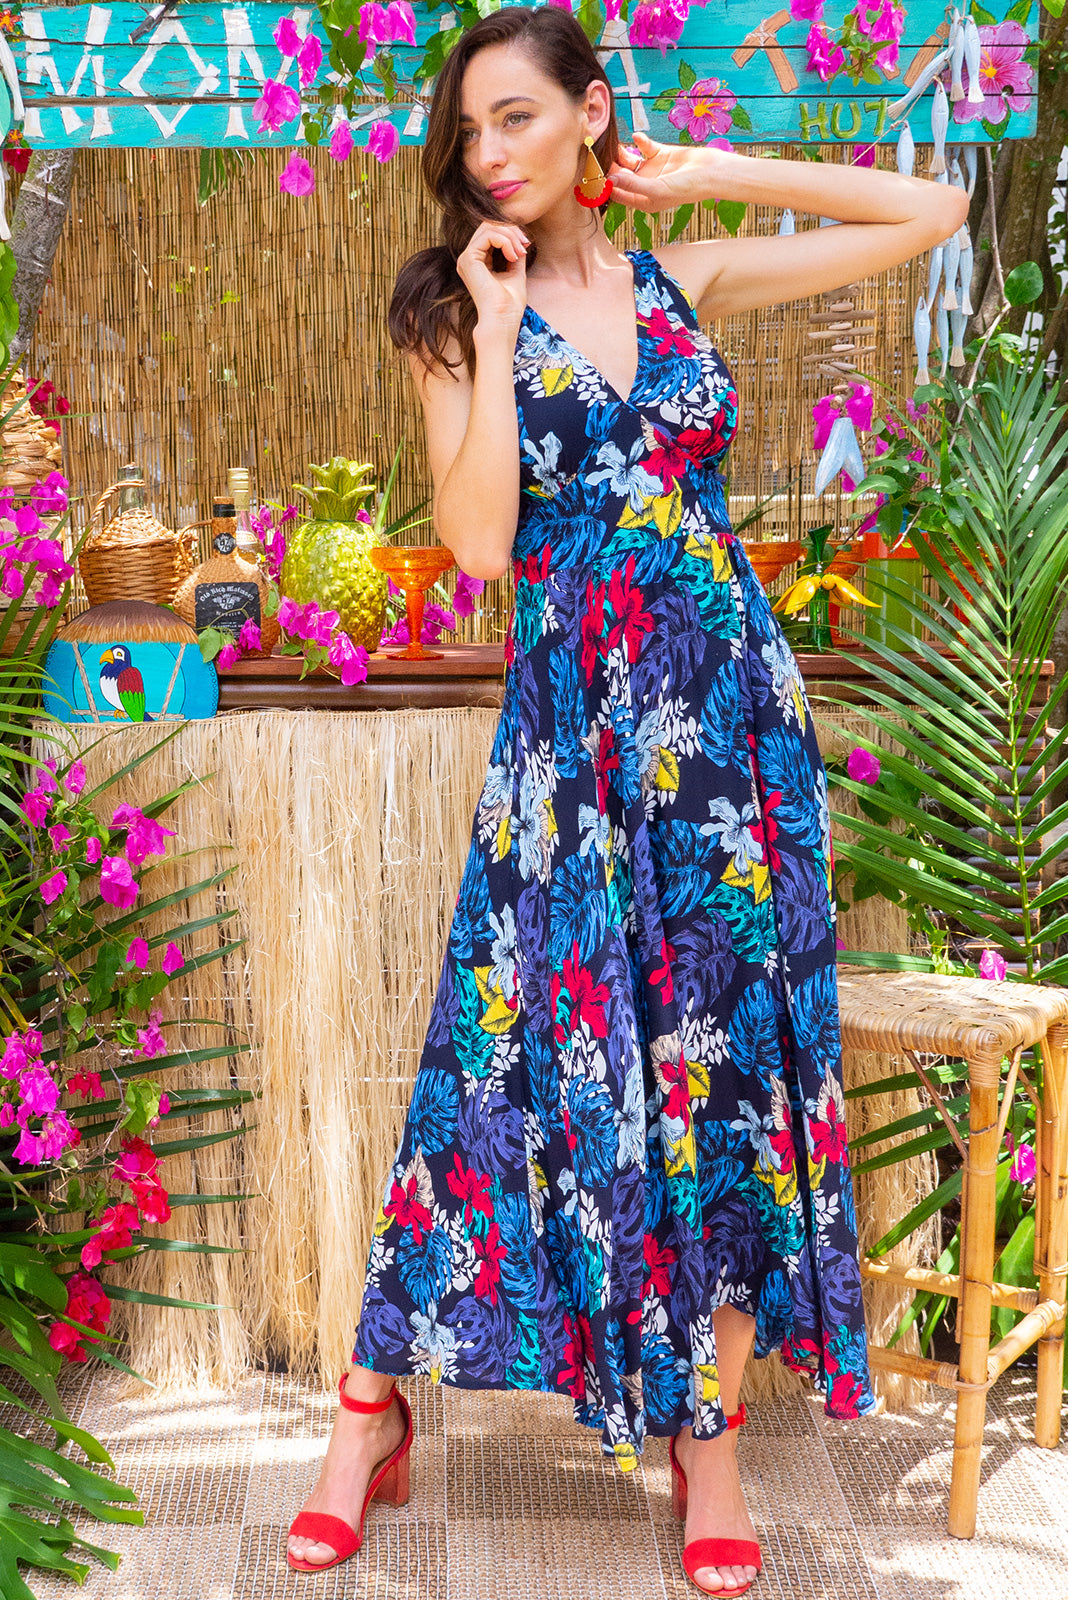 Lola Navy Delicia Maxi Dress features a vintage inspired fitted basque waist and elasticated waist with a sleeveless design and deep v neck the fabric is a soft woven rayon in a navy and multicoloured dark bright jungle floral print